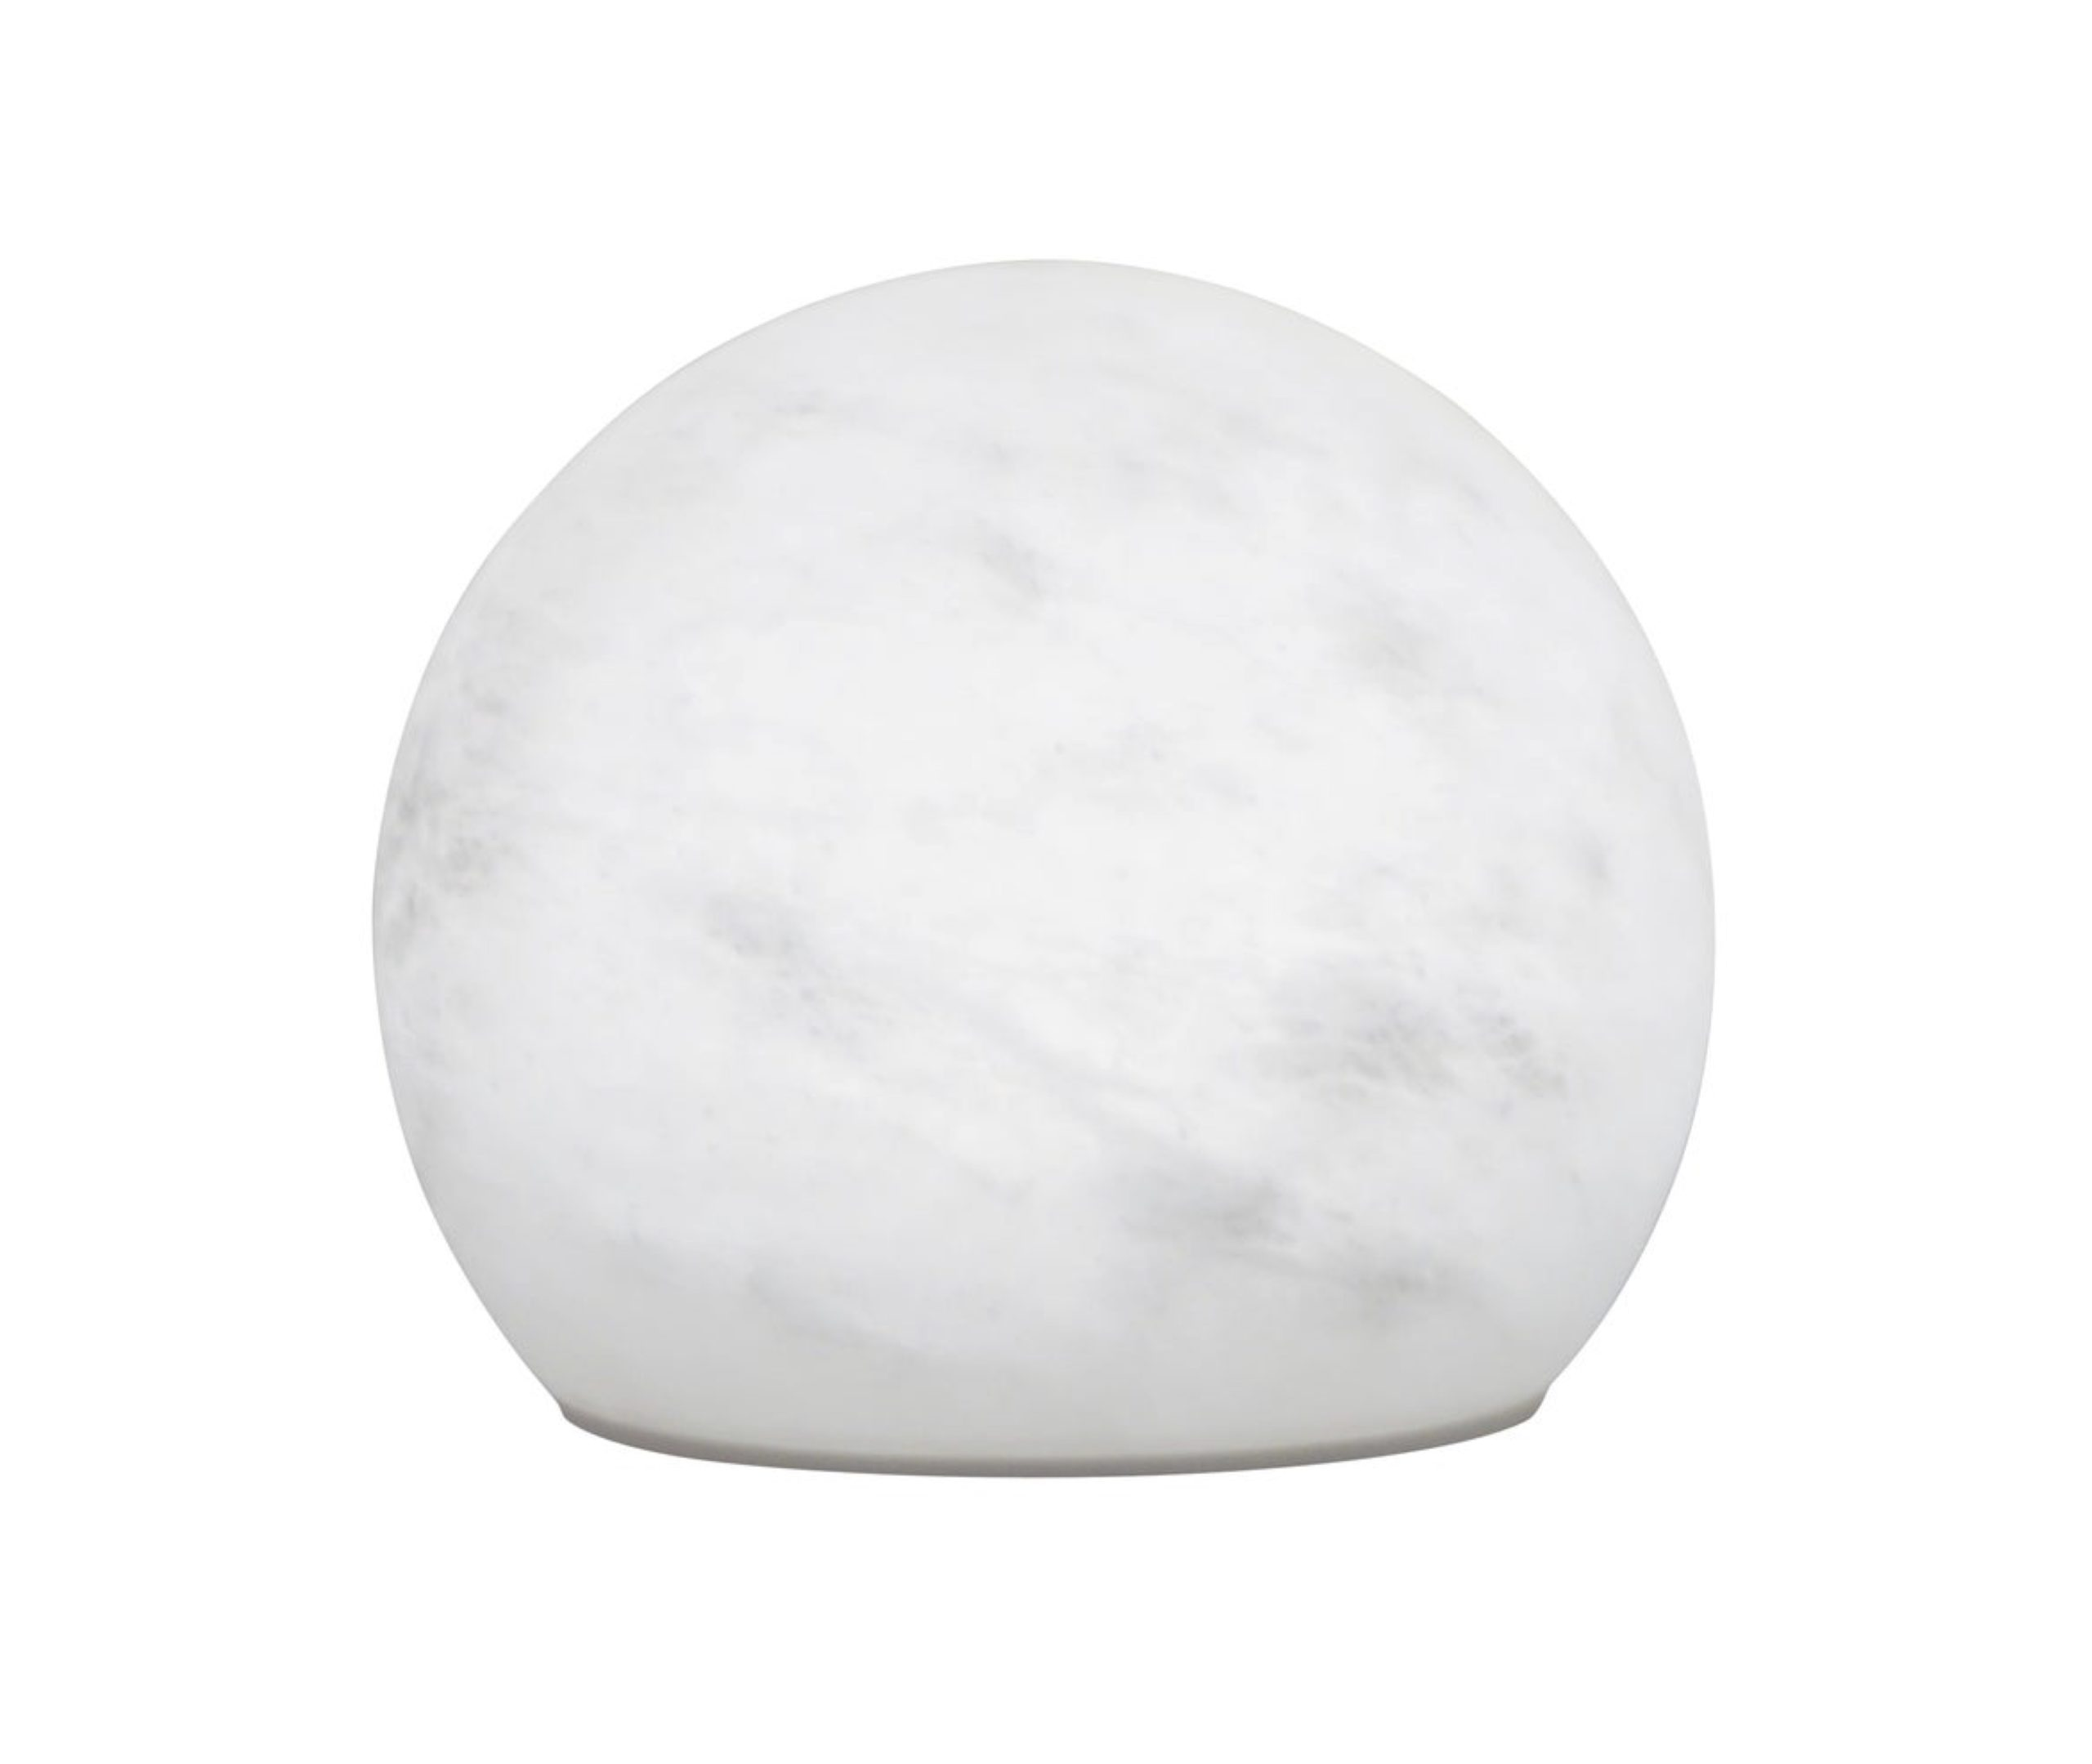 cosulich_interiors_and_antiques_products_new_york_design_Bespoke_Italian_Minimalist_White_Alabaster_Moon_Wireless_Round_Table_main-scaled-1